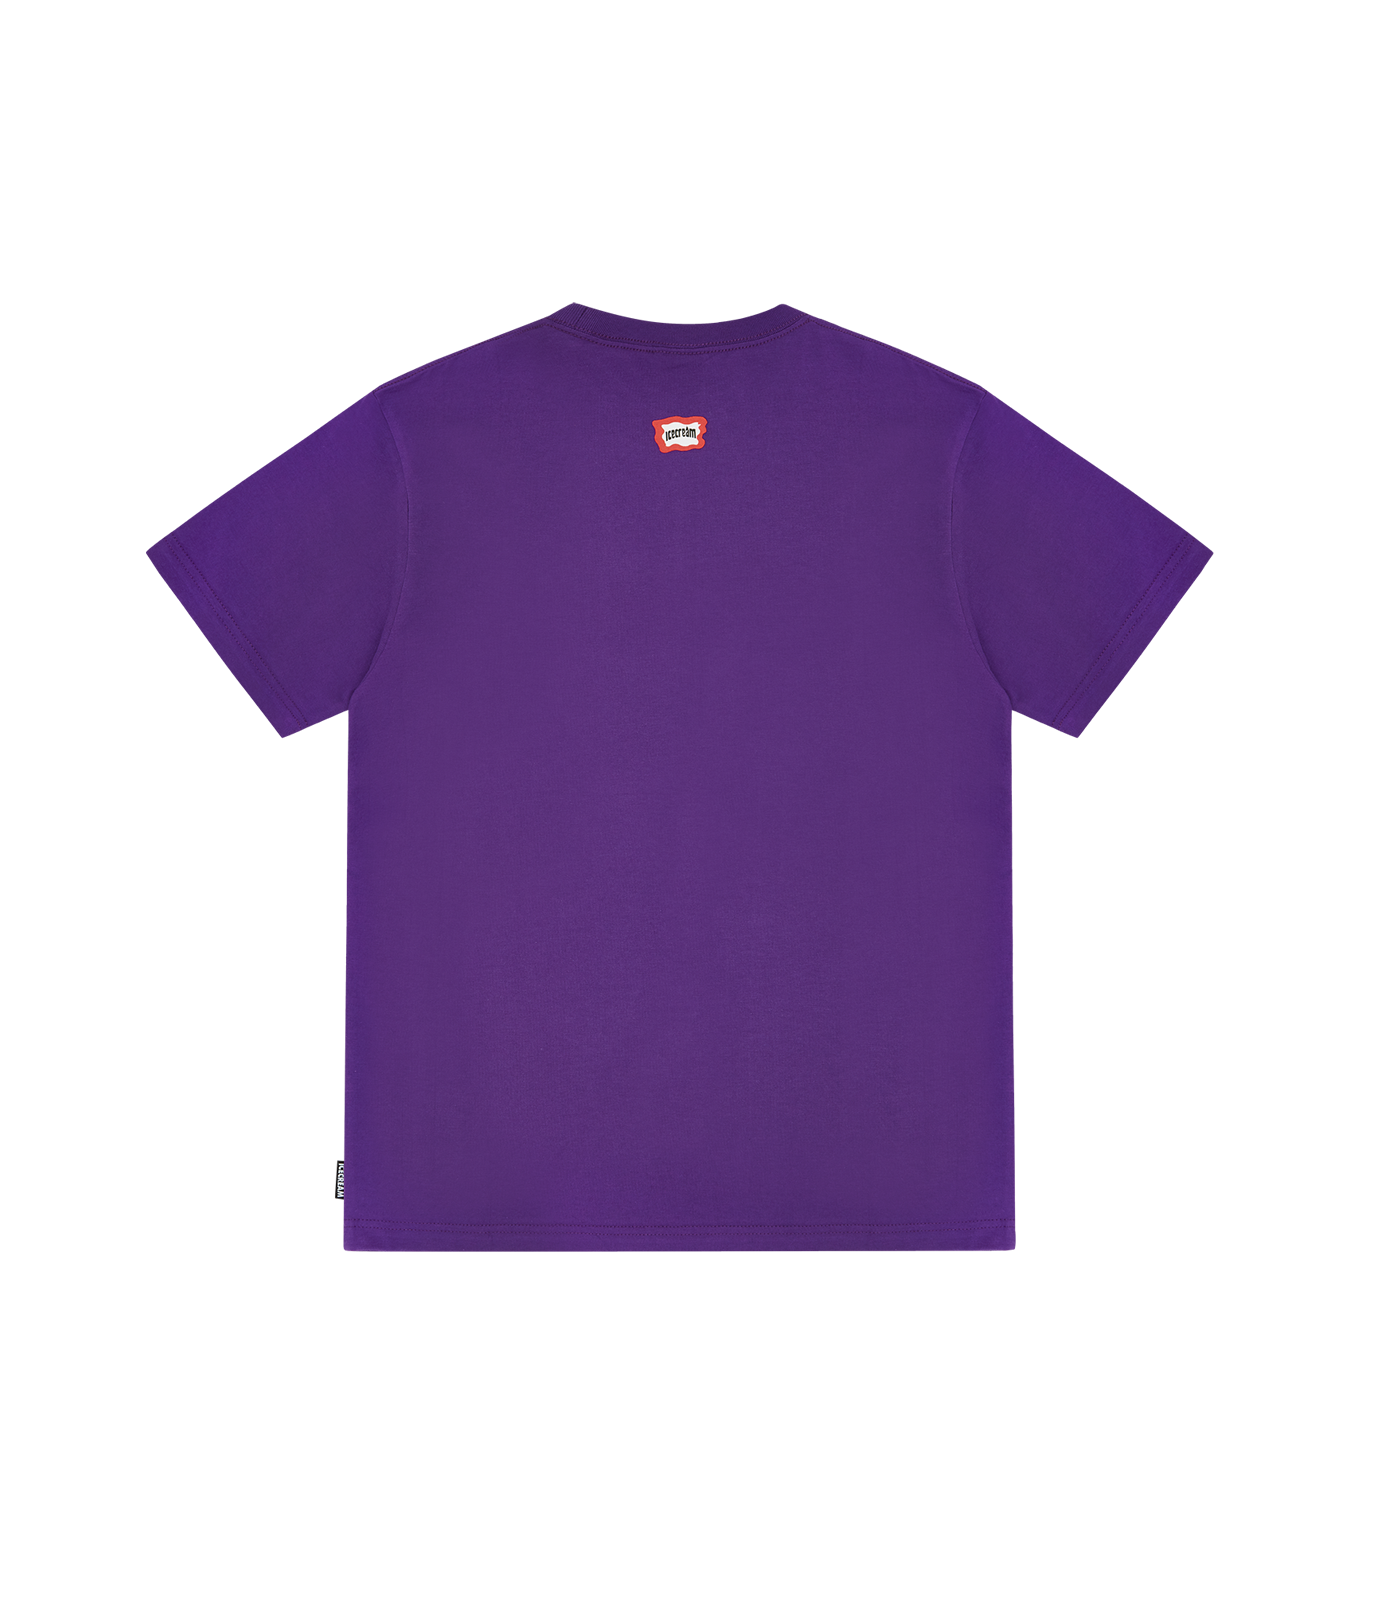 DECENZO T-SHIRT - PURPLE